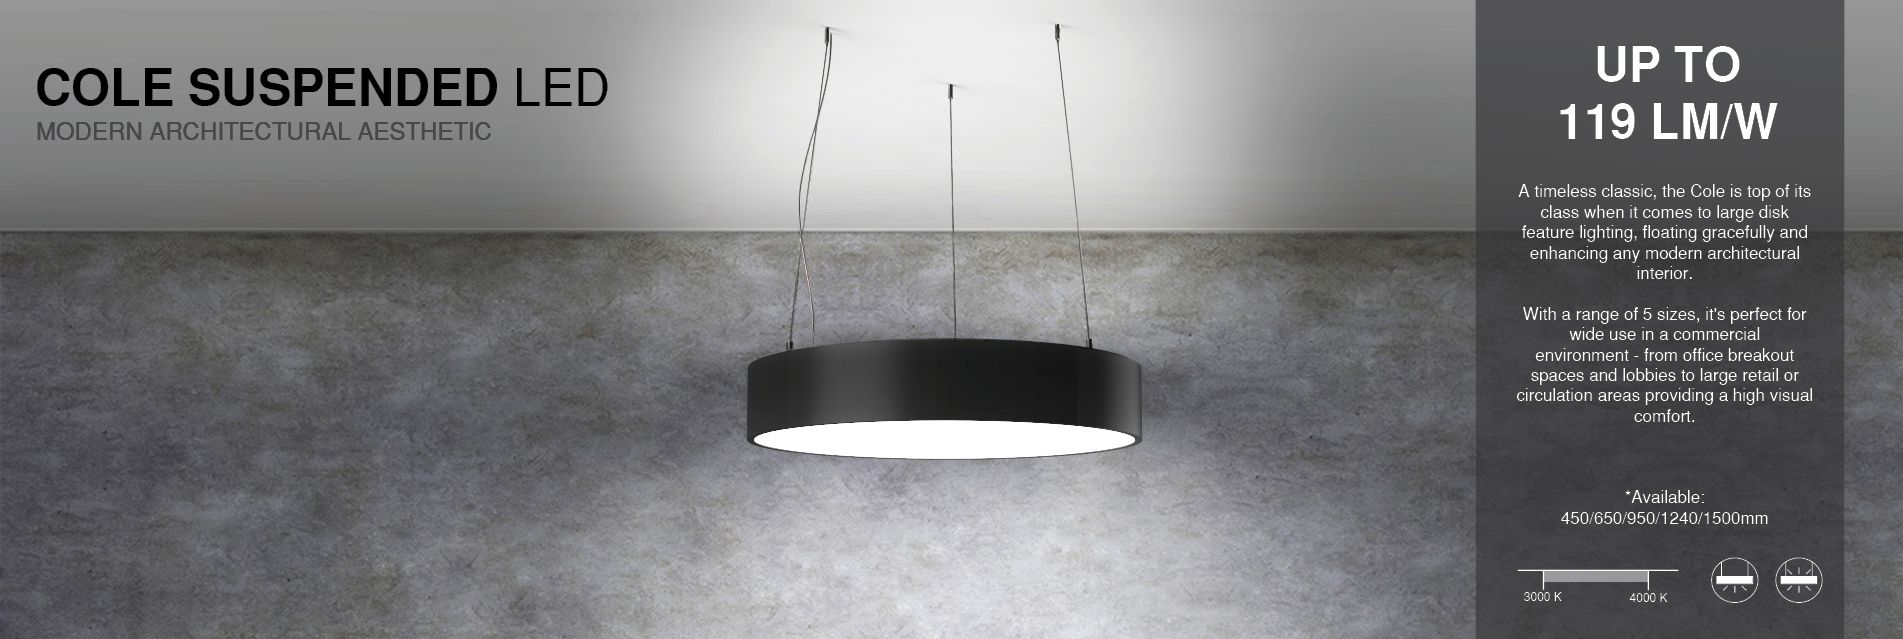 Architectural Led Circular Suspended Feature Lighting 299